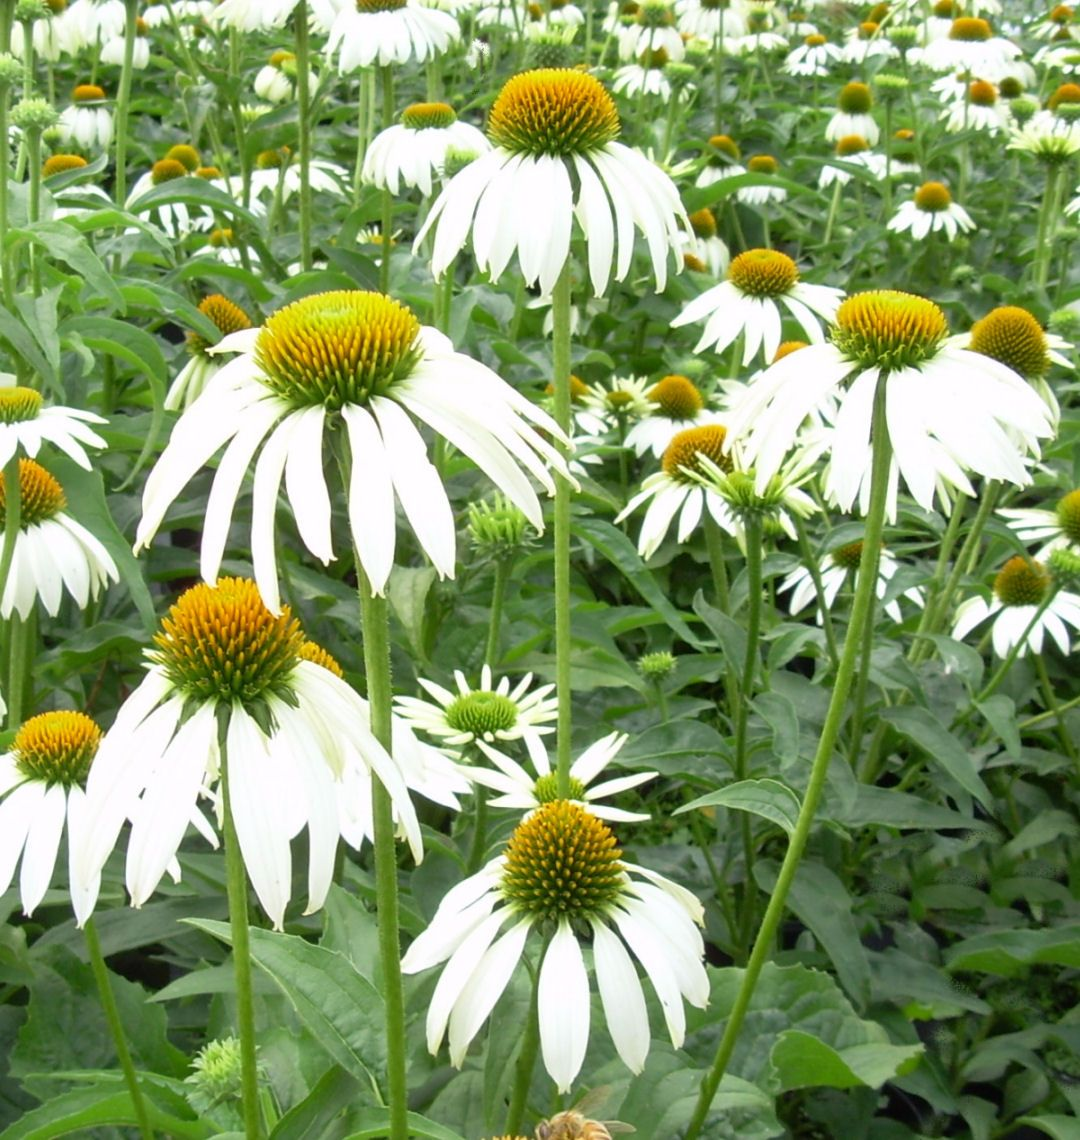 White Swan Coneflower A Popular Classic White Coneflower With